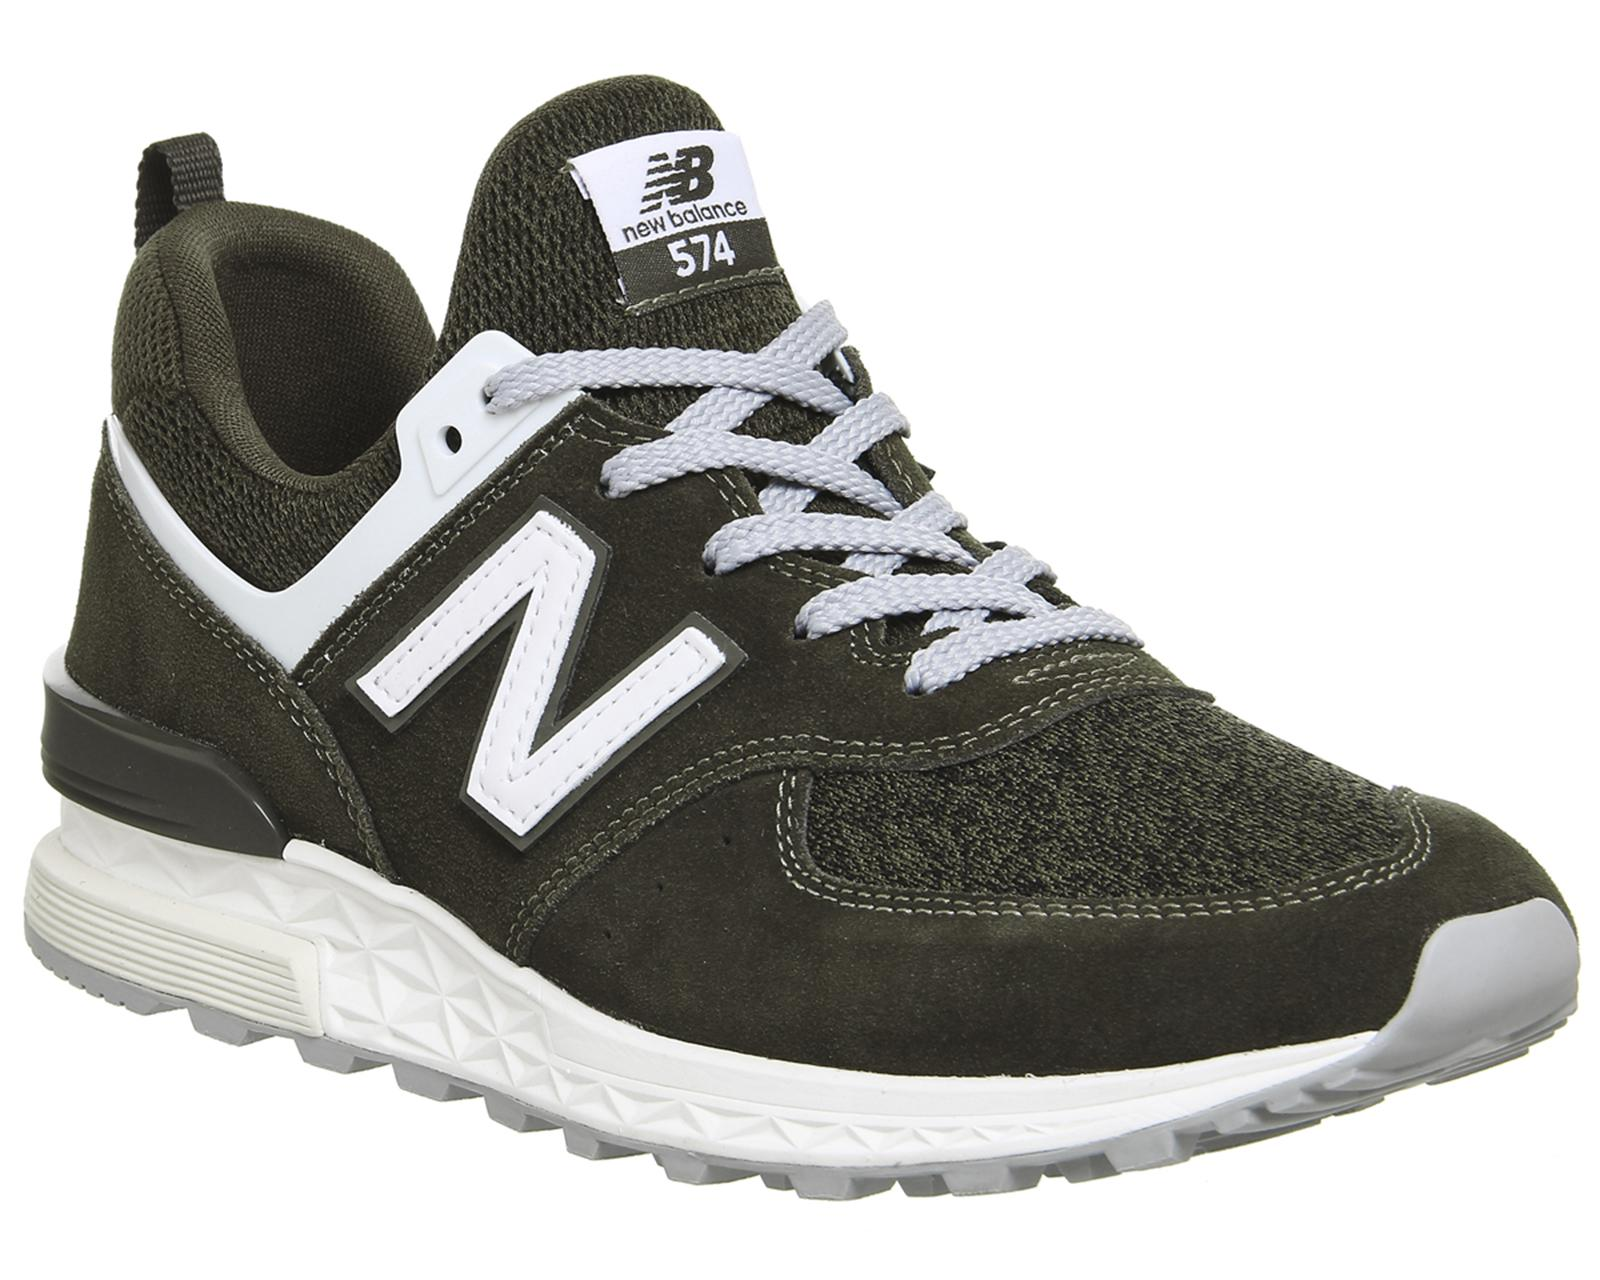 new balance men's 574s trainer